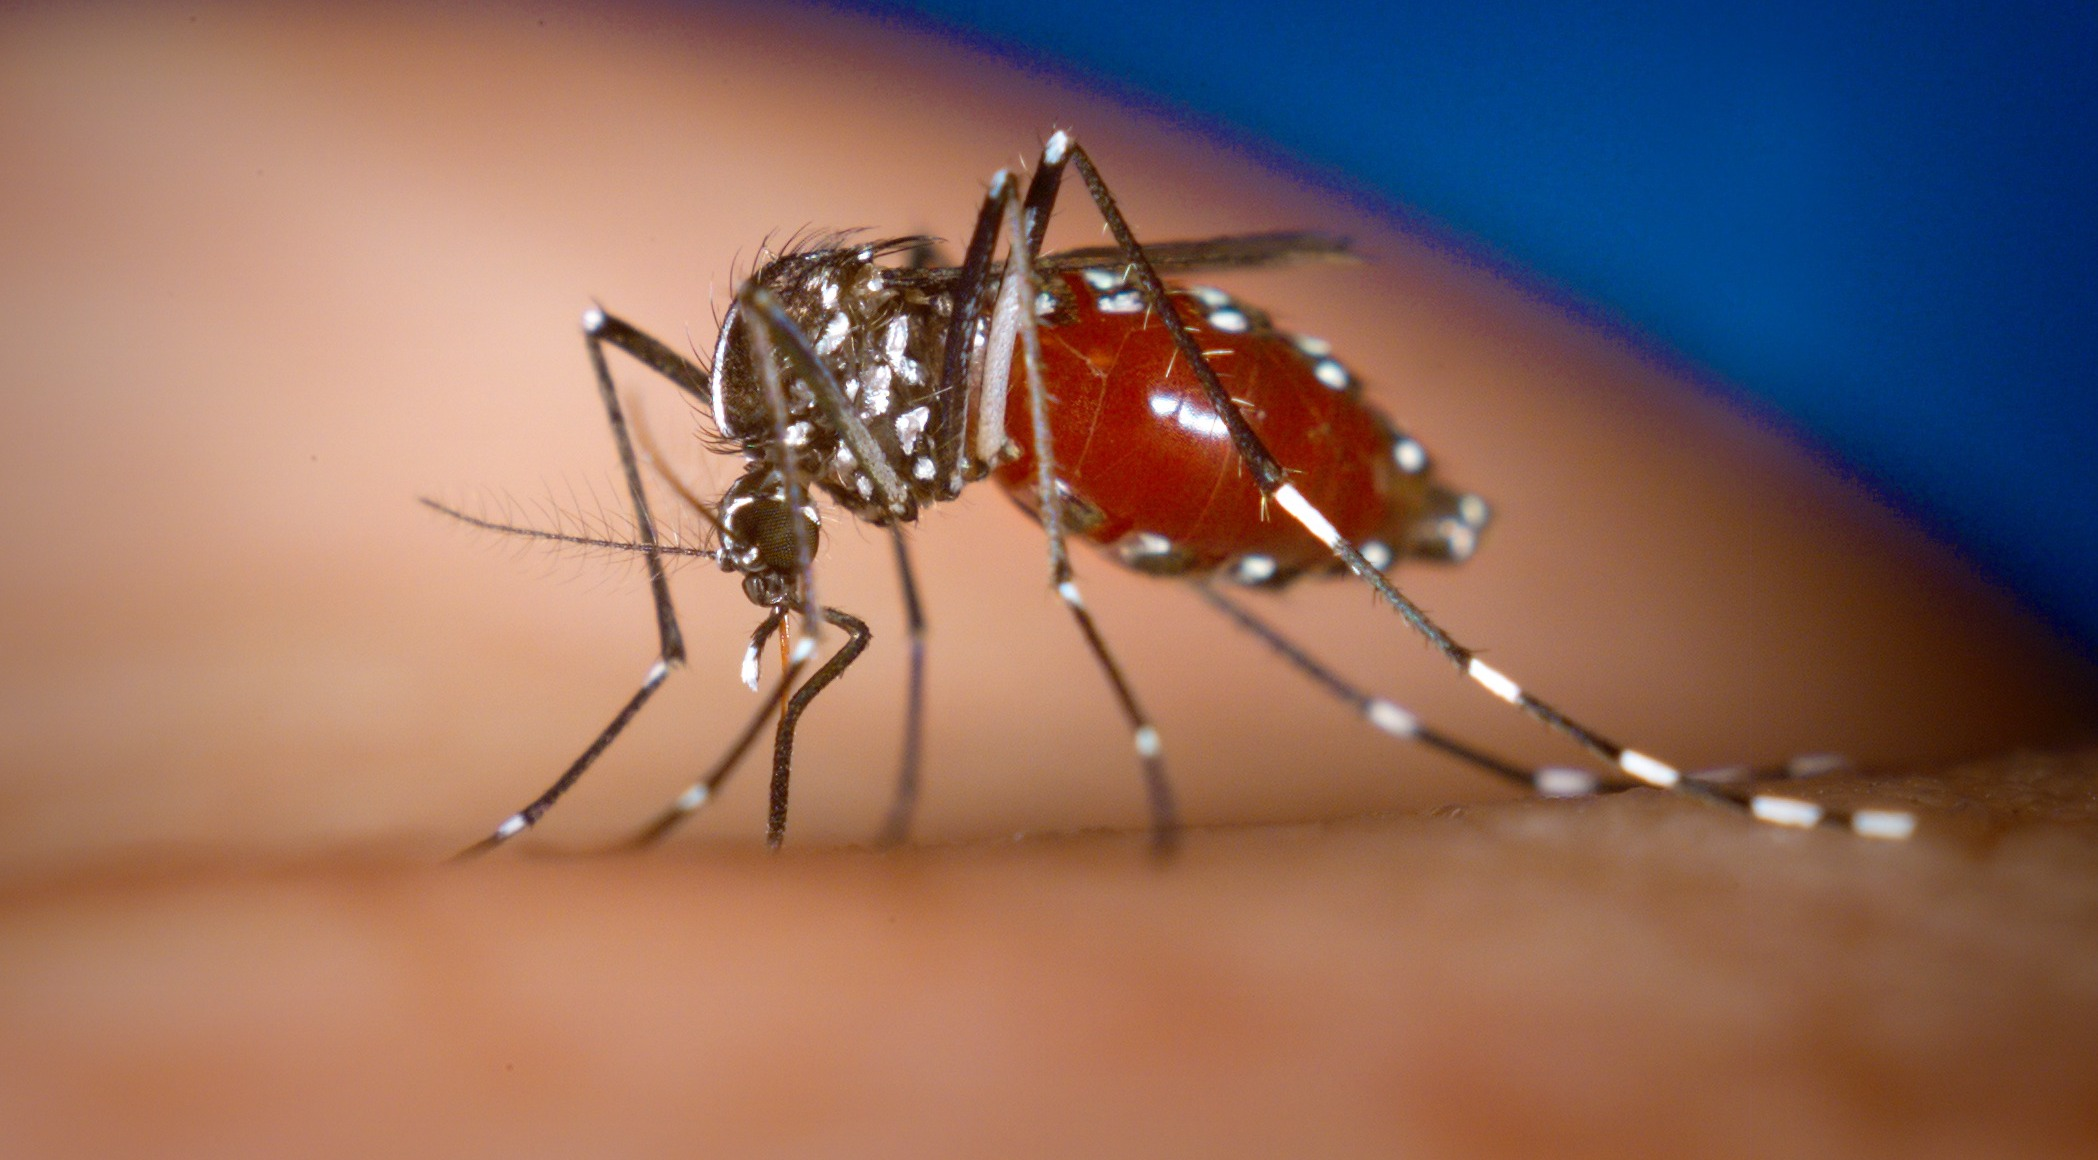 Exemplar de mosquit tigre sobre la pell d'una persona / Centers for Disease Control and Prevention (Wikimedia)  Photo by James Gathany, Centers for Disease Control and Prevention